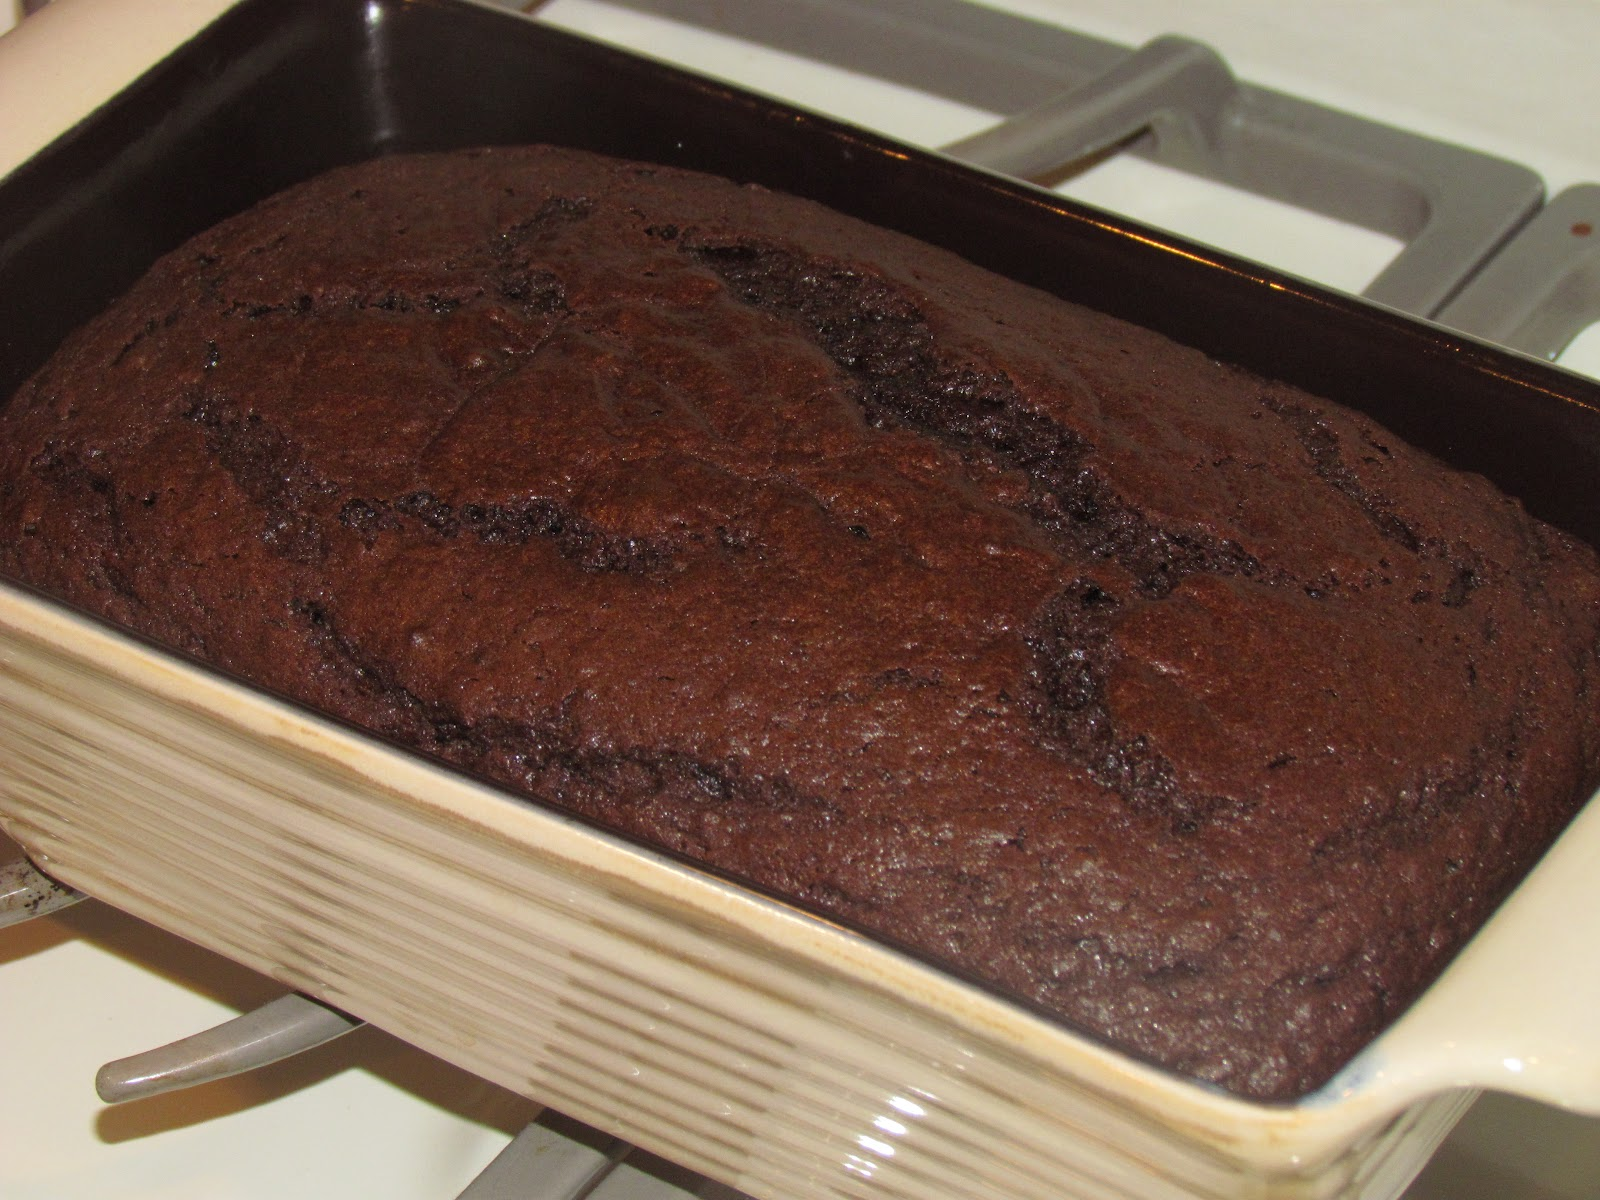 Made in our kitchen: Chocolate Pound Cake